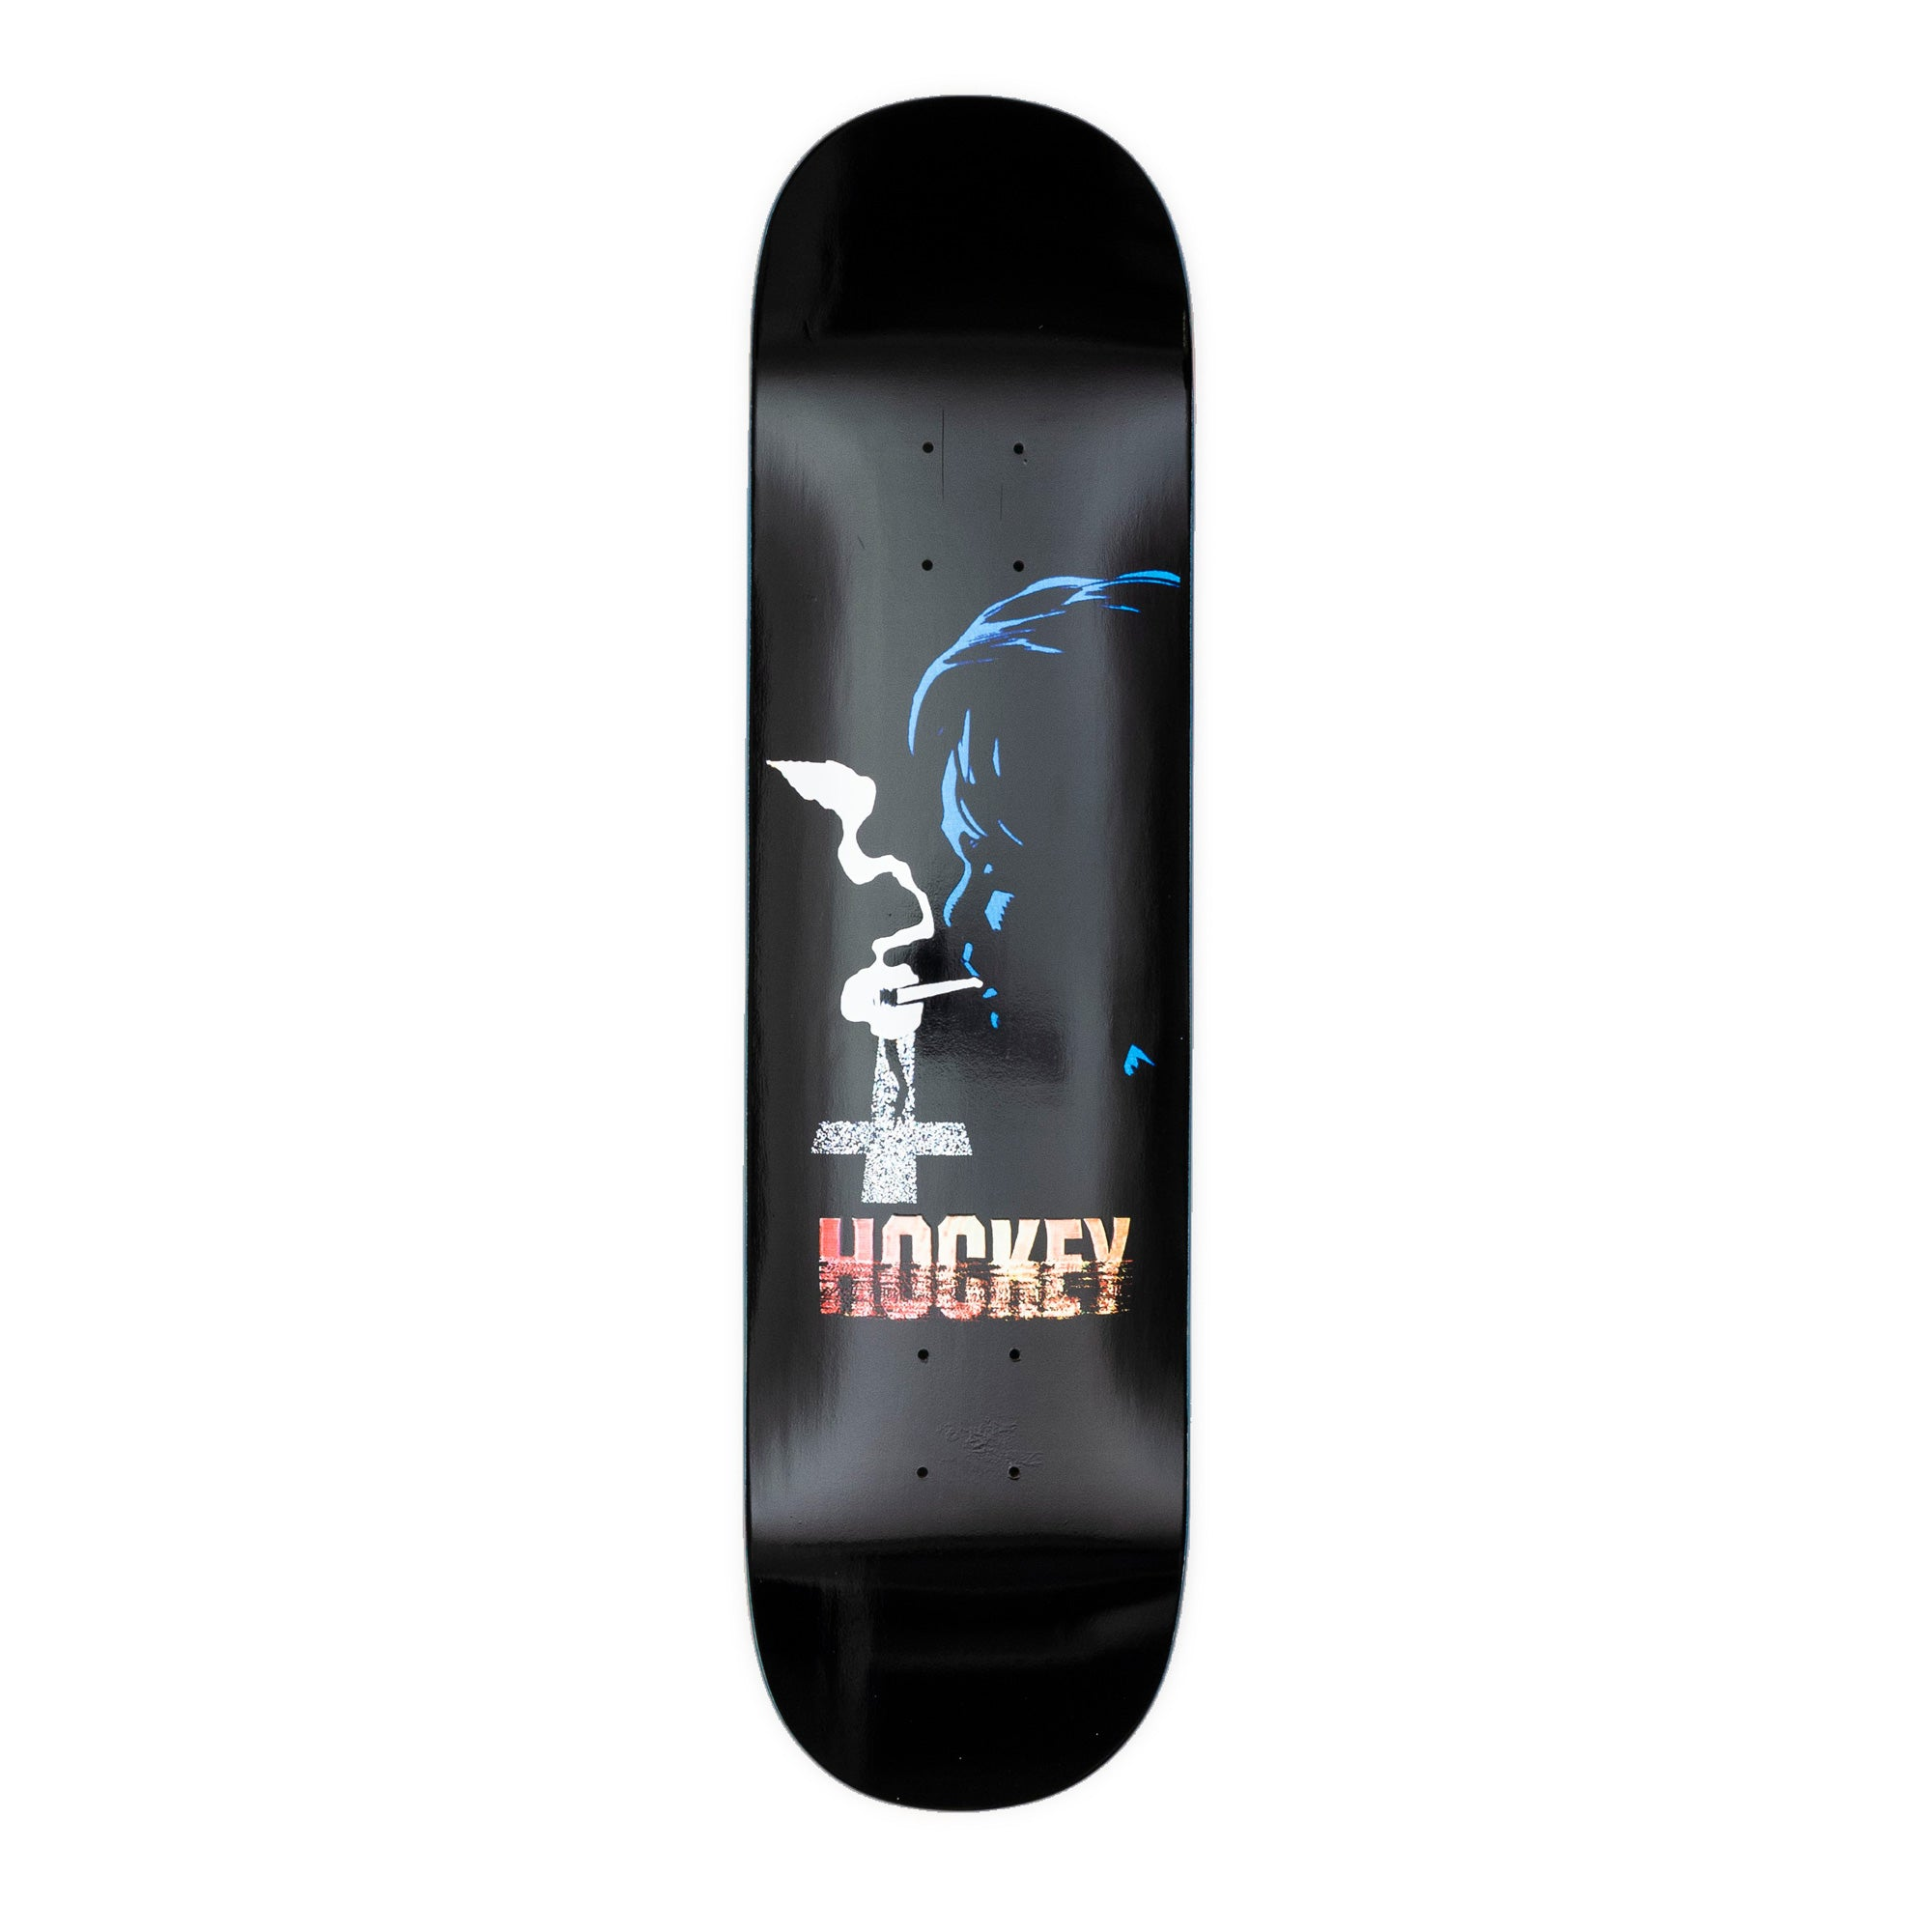 Hockey Confession Donovon Piscopo Deck - 8.0""